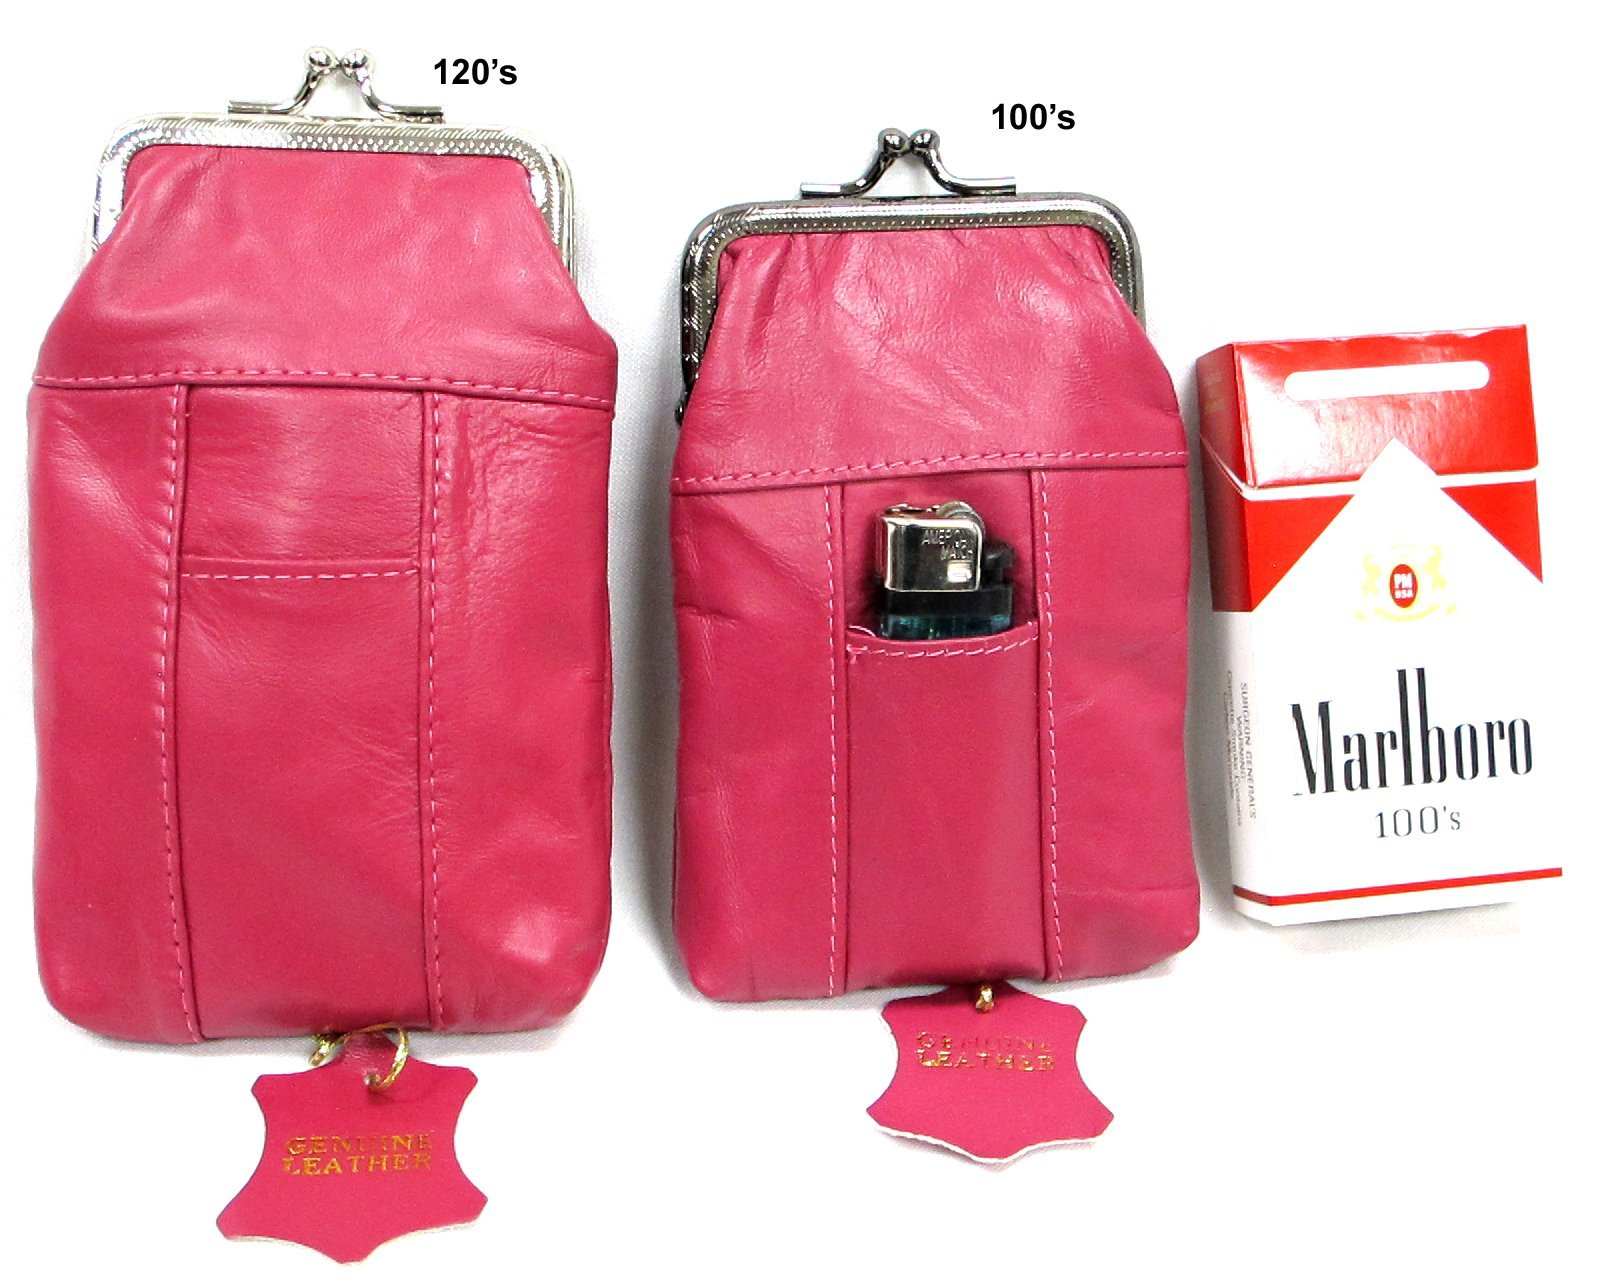 2pc Hot Pink Genuine Soft Leather Cigarette Case with Lighter Pocket 100s + 120s 2pc for $10.99